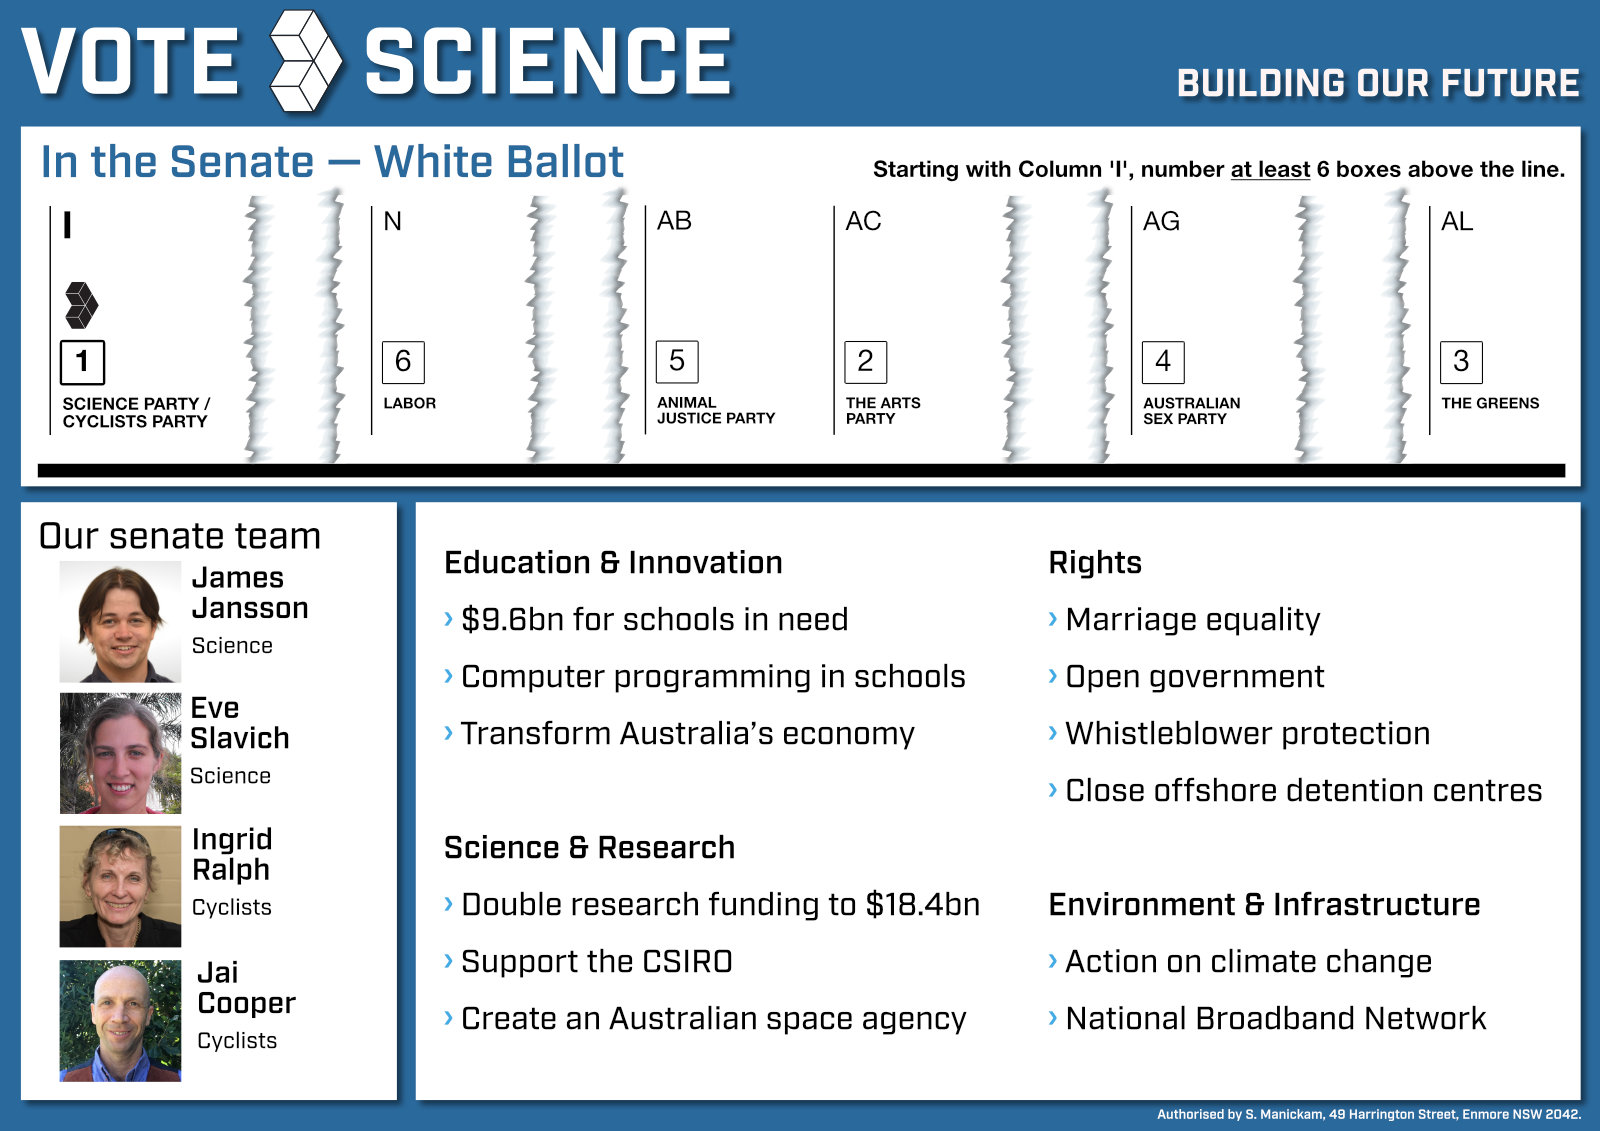 How to vote Science in NSW